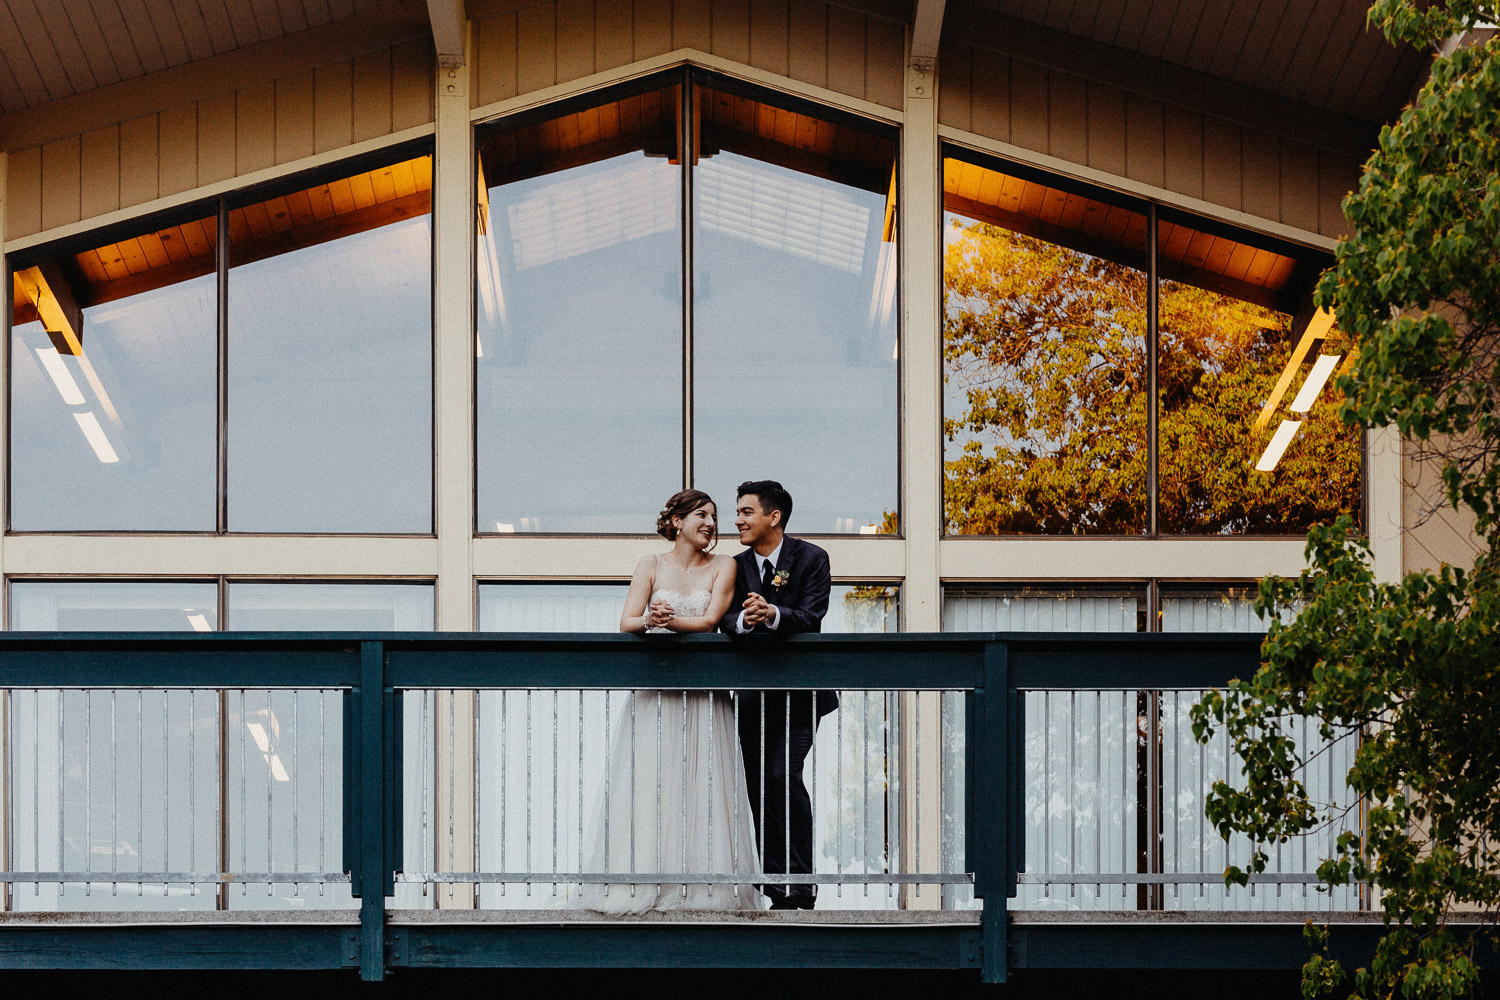 Image of bride and groom at wedding venue